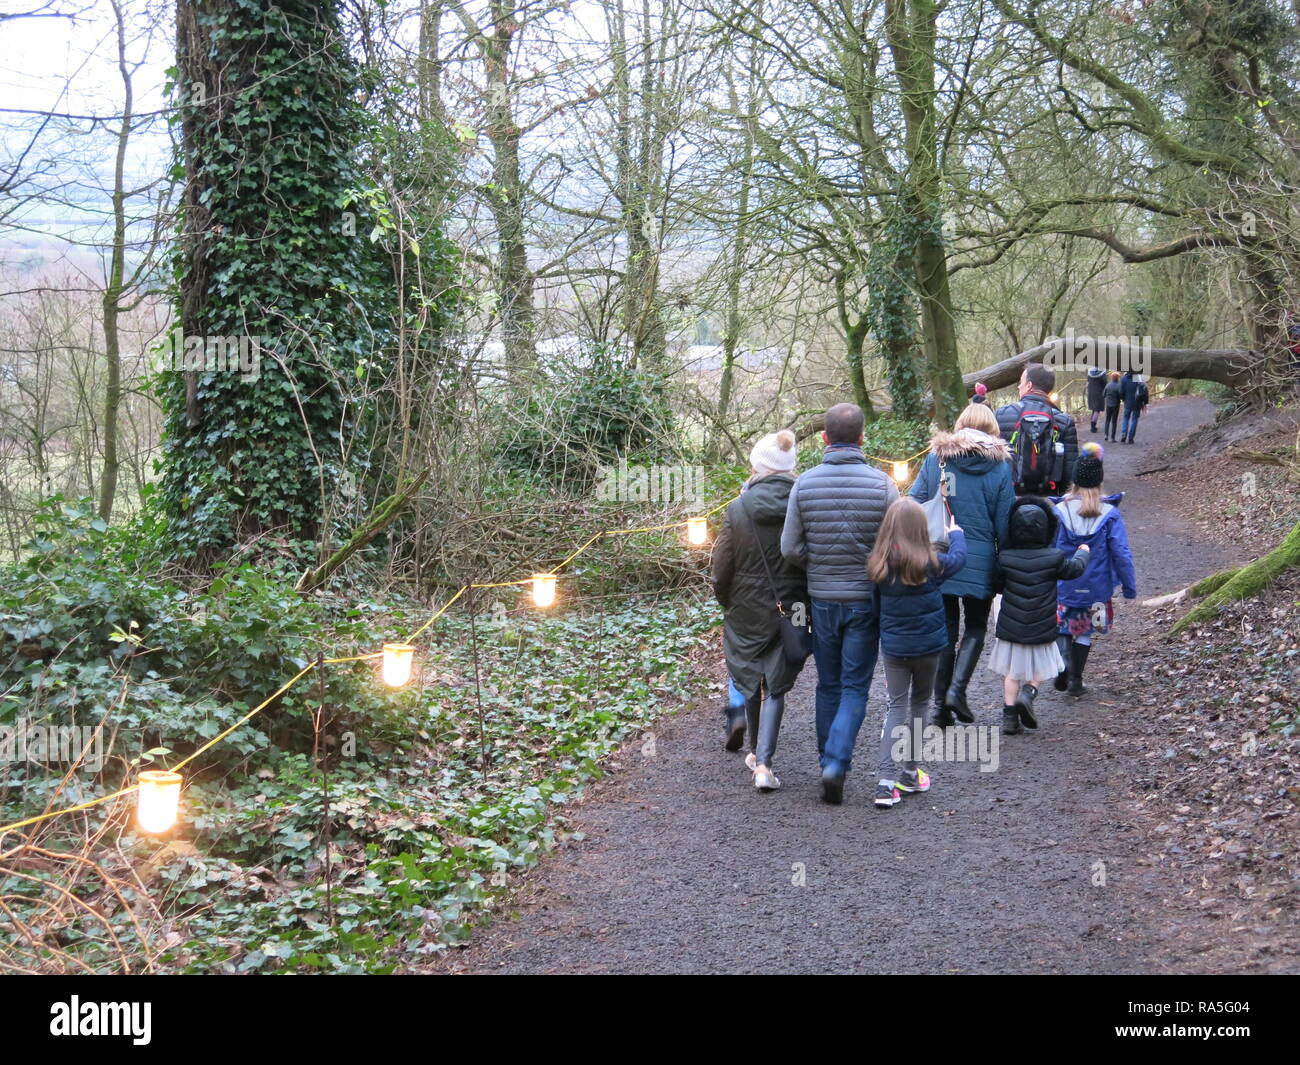 A ramble in the woods and climbing tree trunks is fun for all the family in the gap between Christmas and New Year; Waddesdon Manor, December 2018 - Stock Image